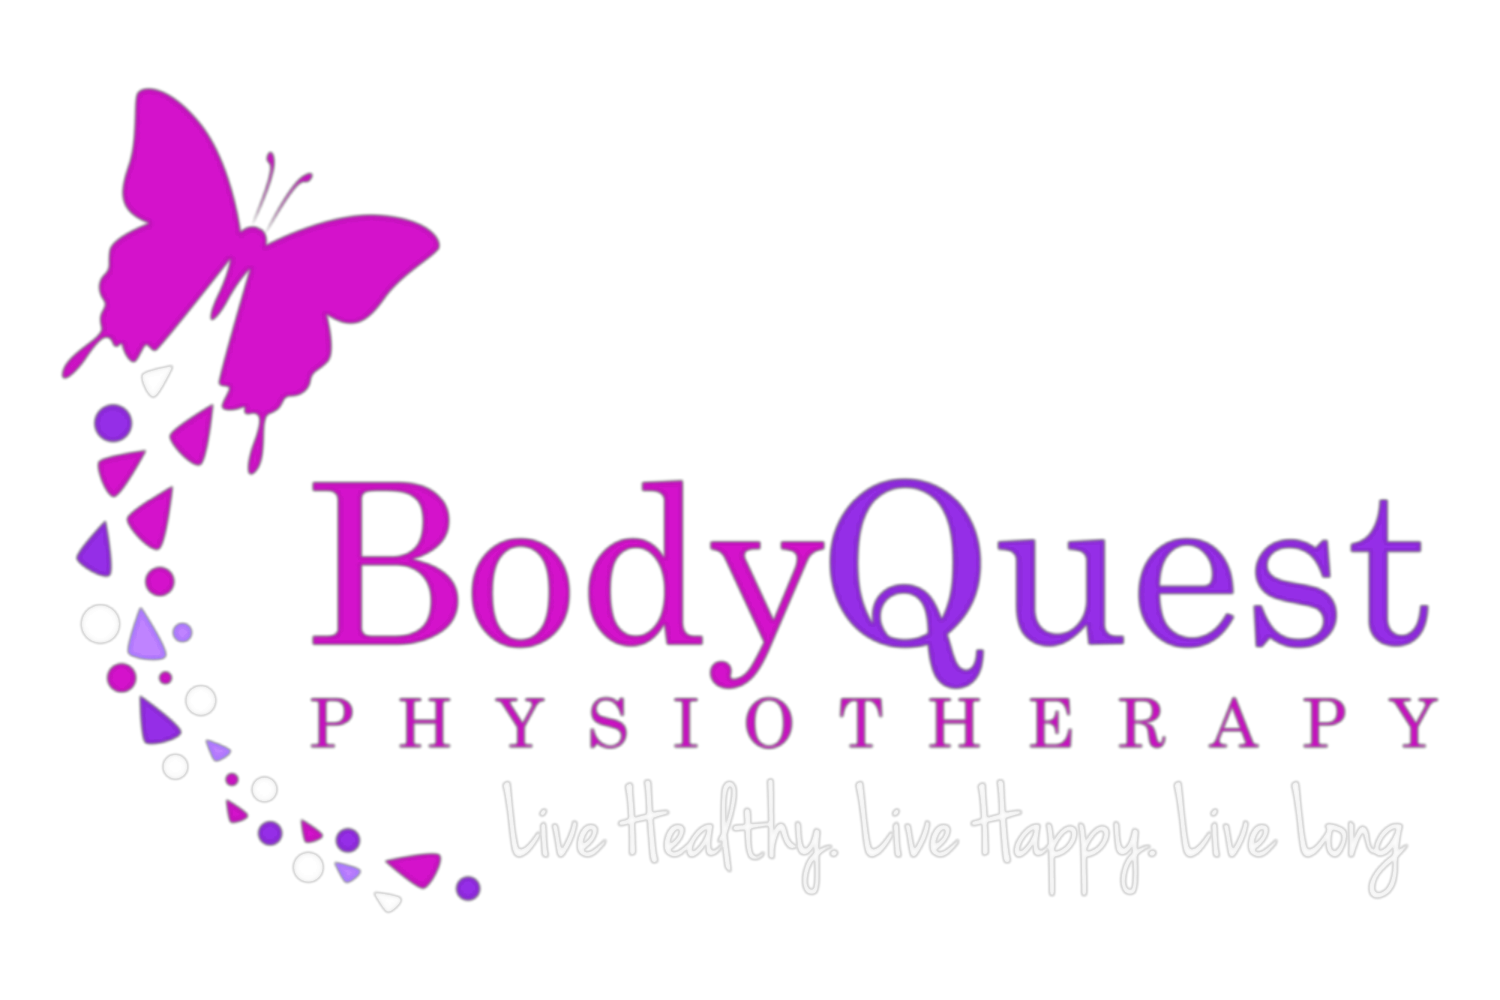 BodyQuest Physiotherapy